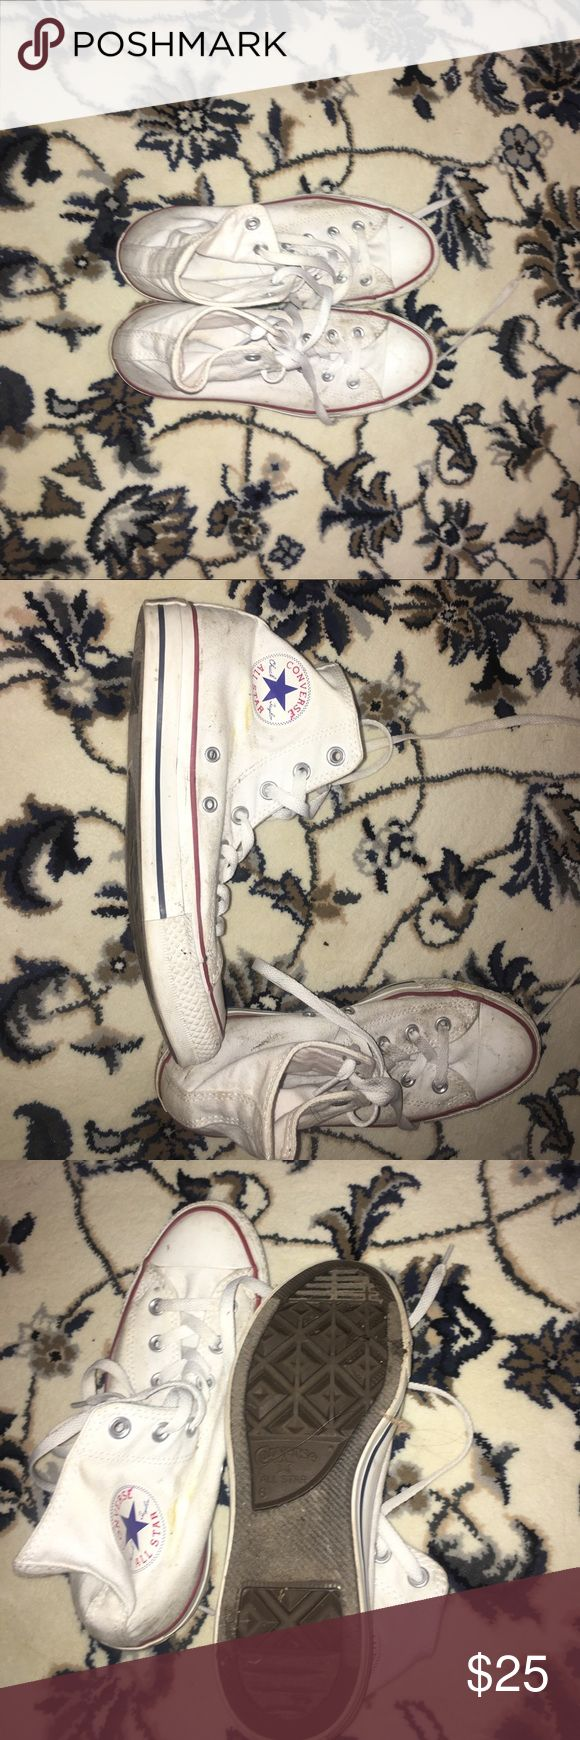 White high top converse White high top converse. I honestly only wore them once to a Halloween party so hence the dirt. I'm sure if you just threw them in the wash they'd be good as new. Open to offers Converse Shoes Sneakers